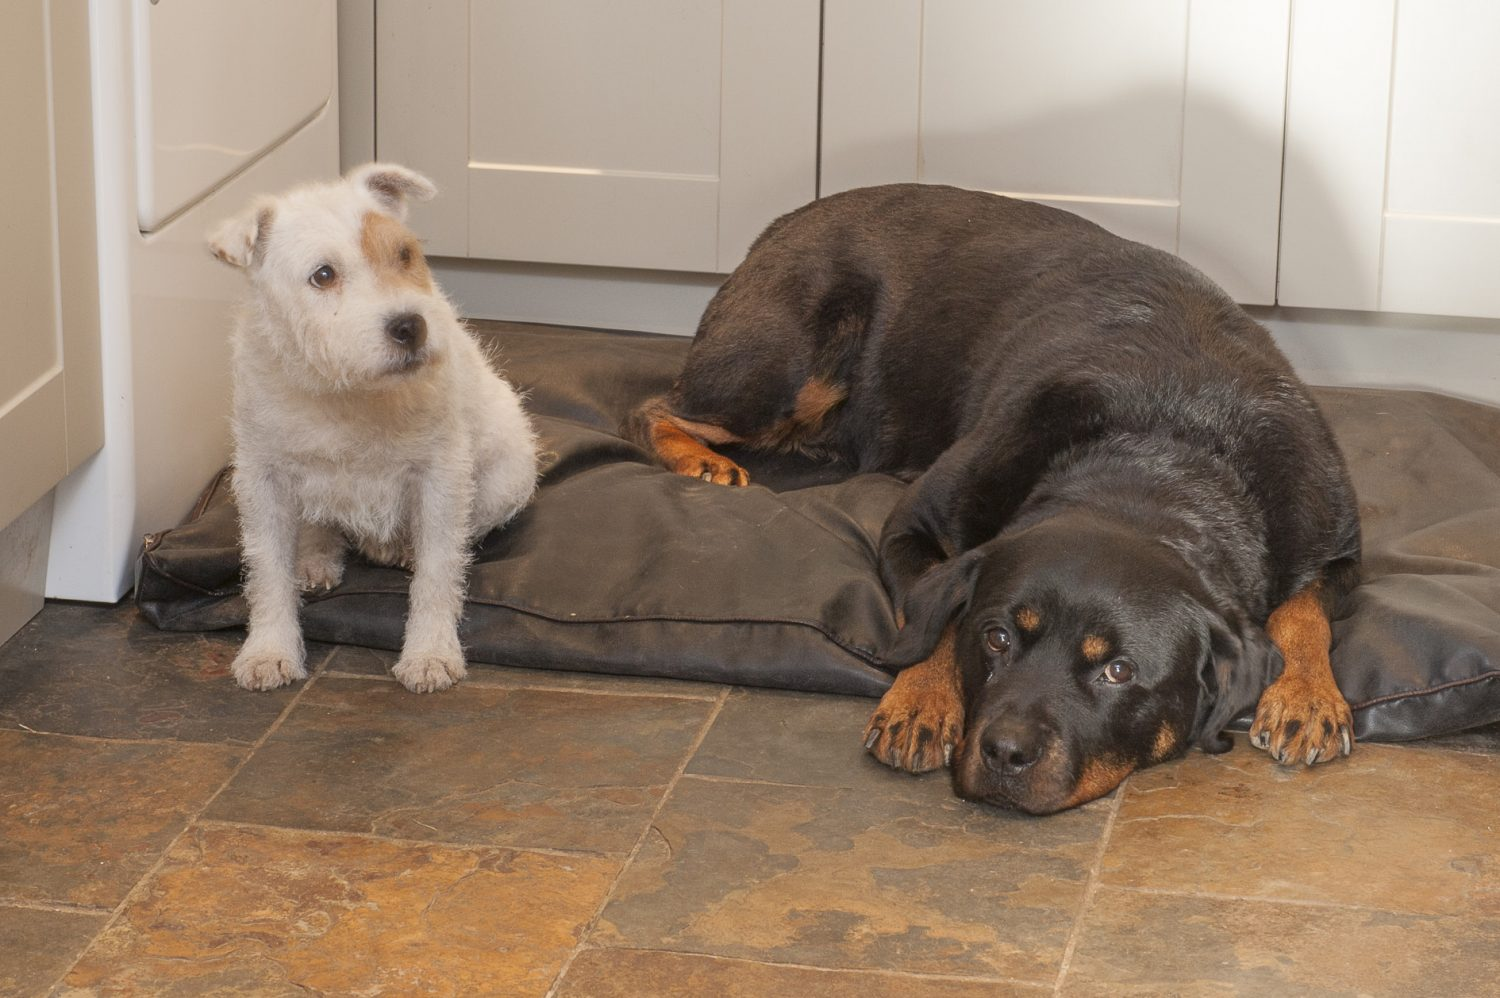 The couple's dogs, Murphy and Tinkerbell, snuggle up in the utility room